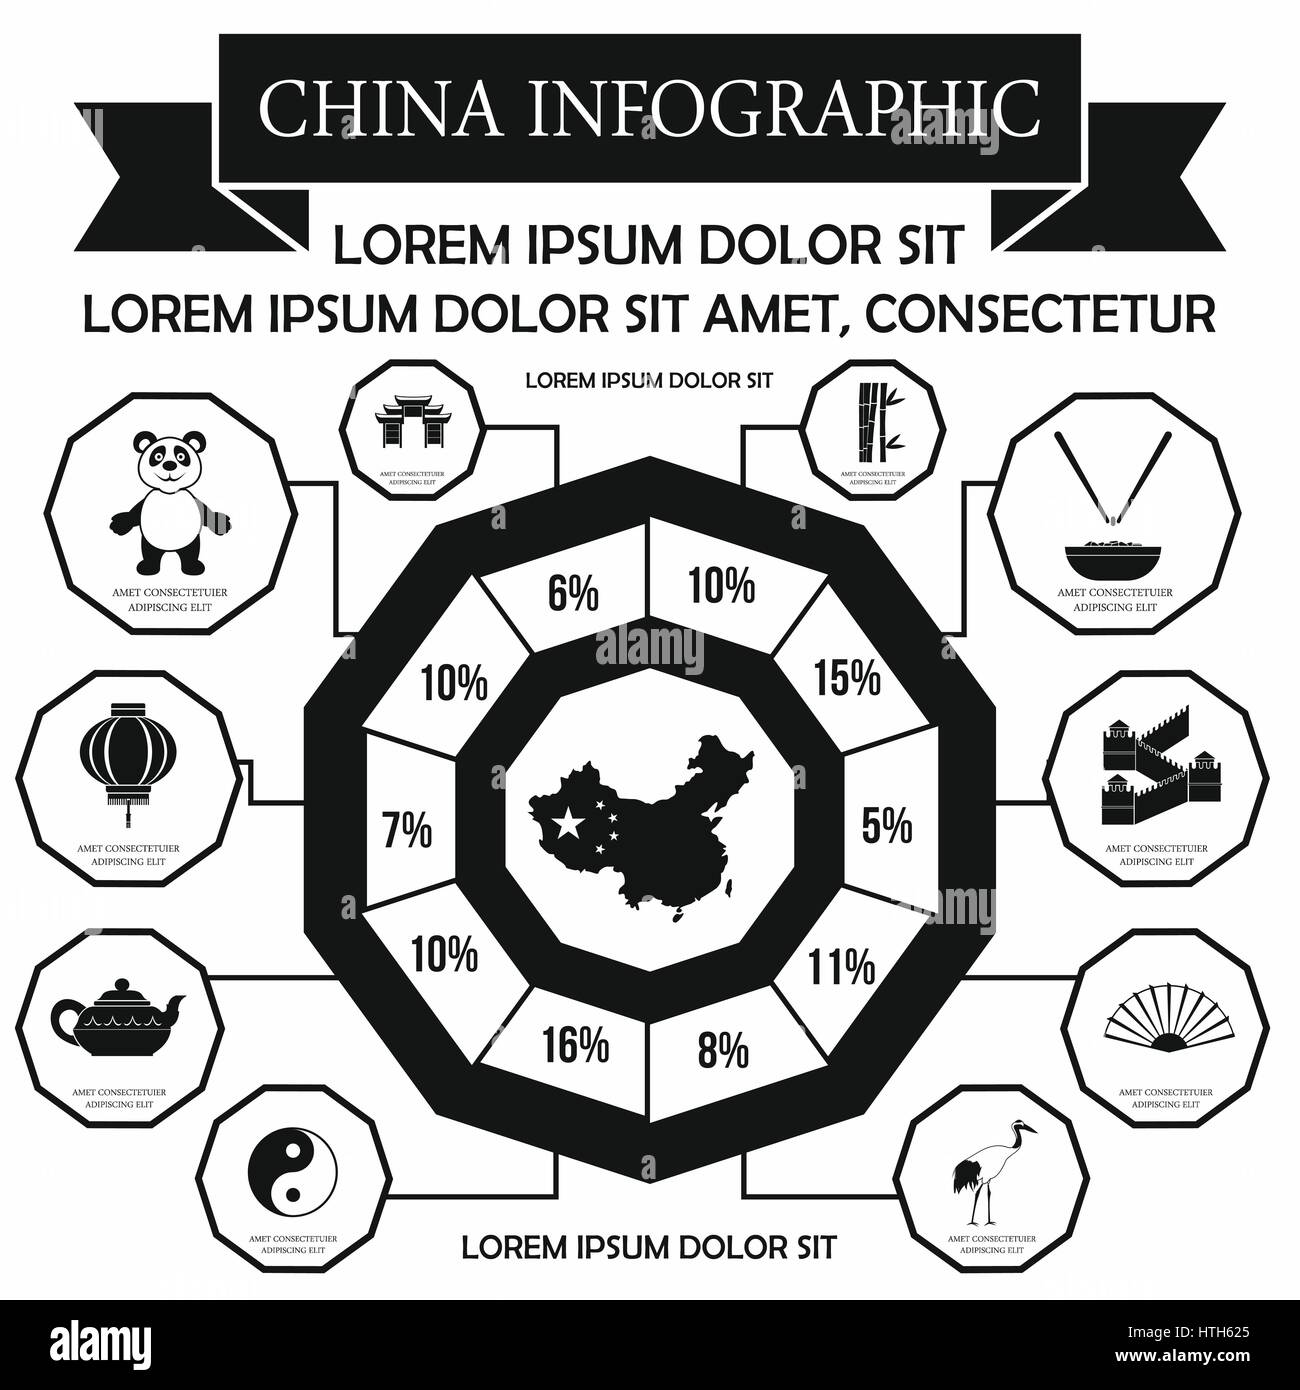 China infographic elements, simple style - Stock Image